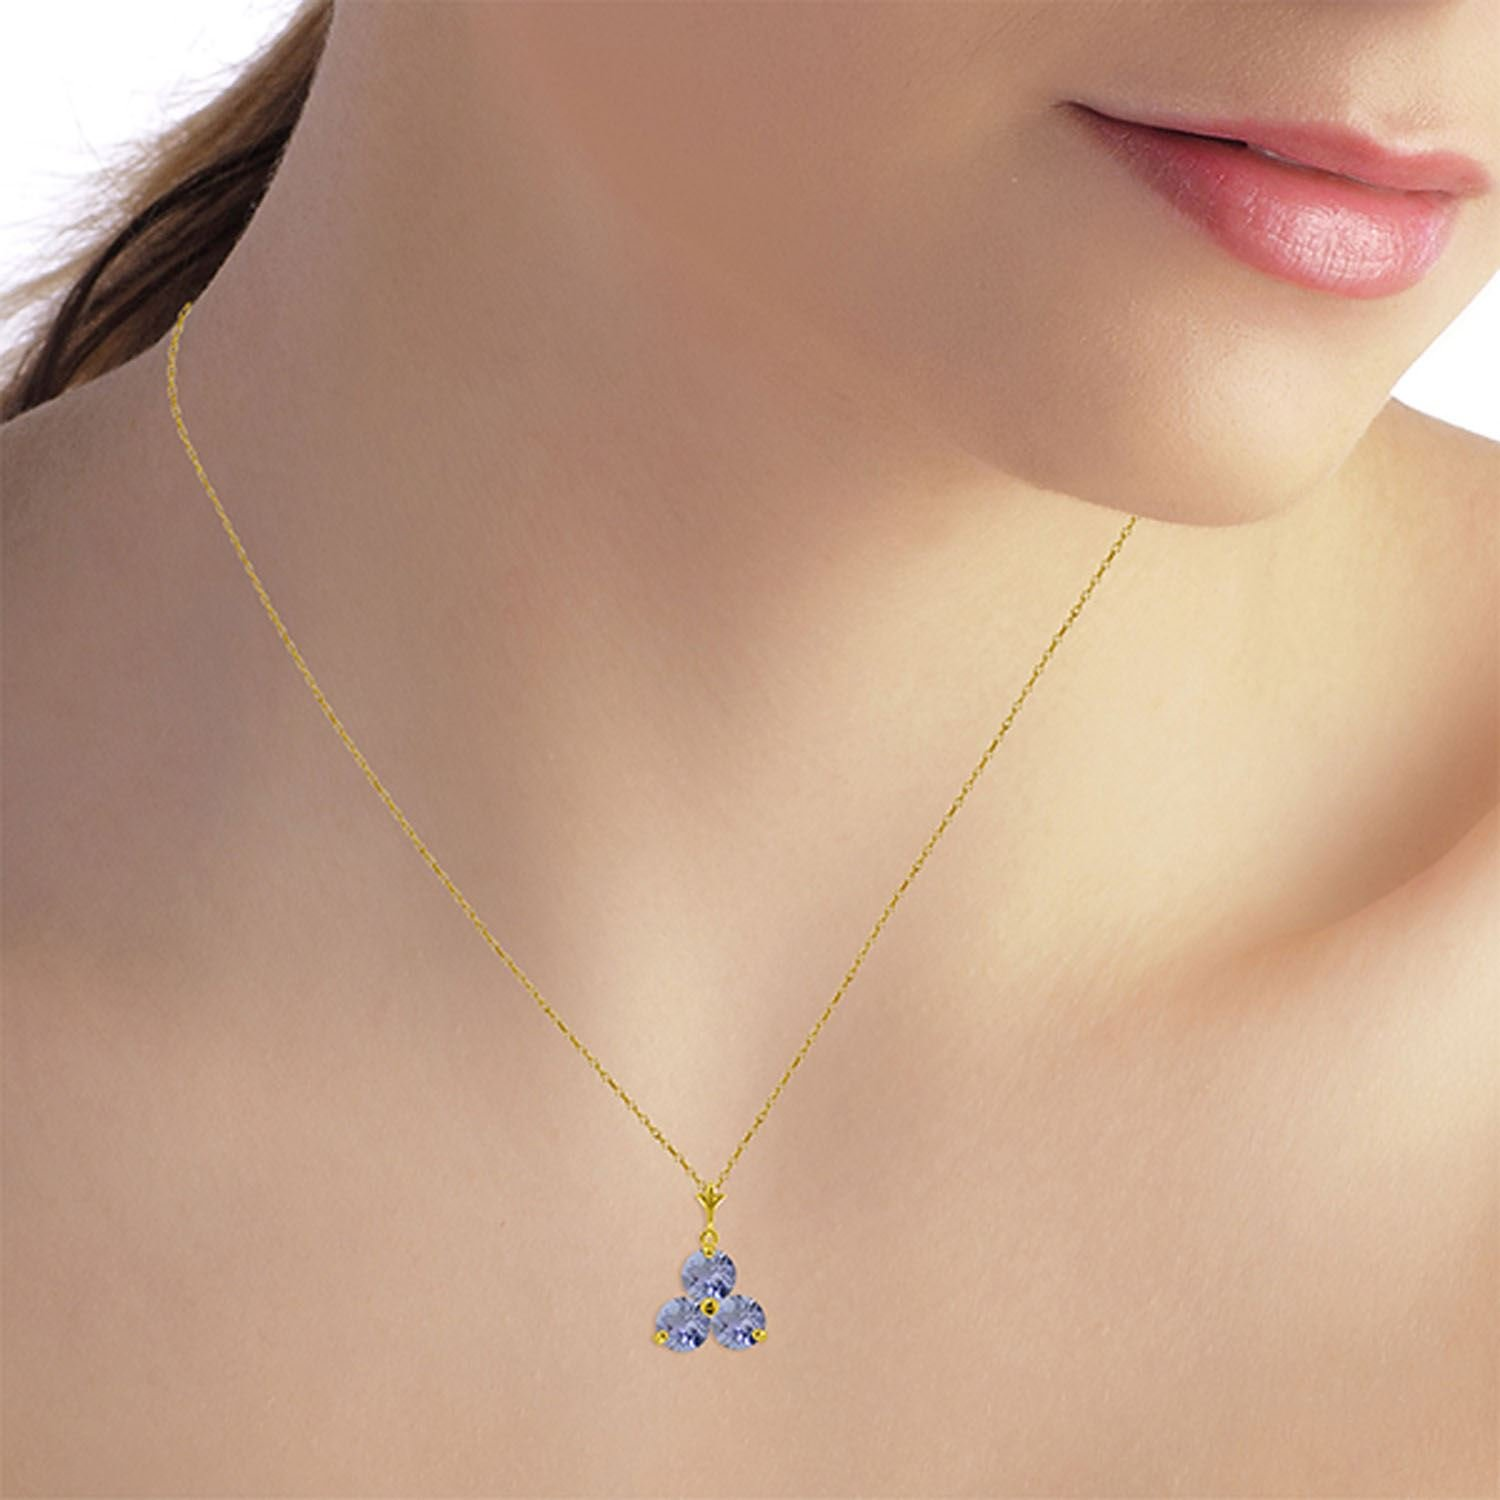 ALARRI 0.75 Carat 14K Solid Gold Hue Of Passion Tanzanite Necklace with 18 Inch Chain Length